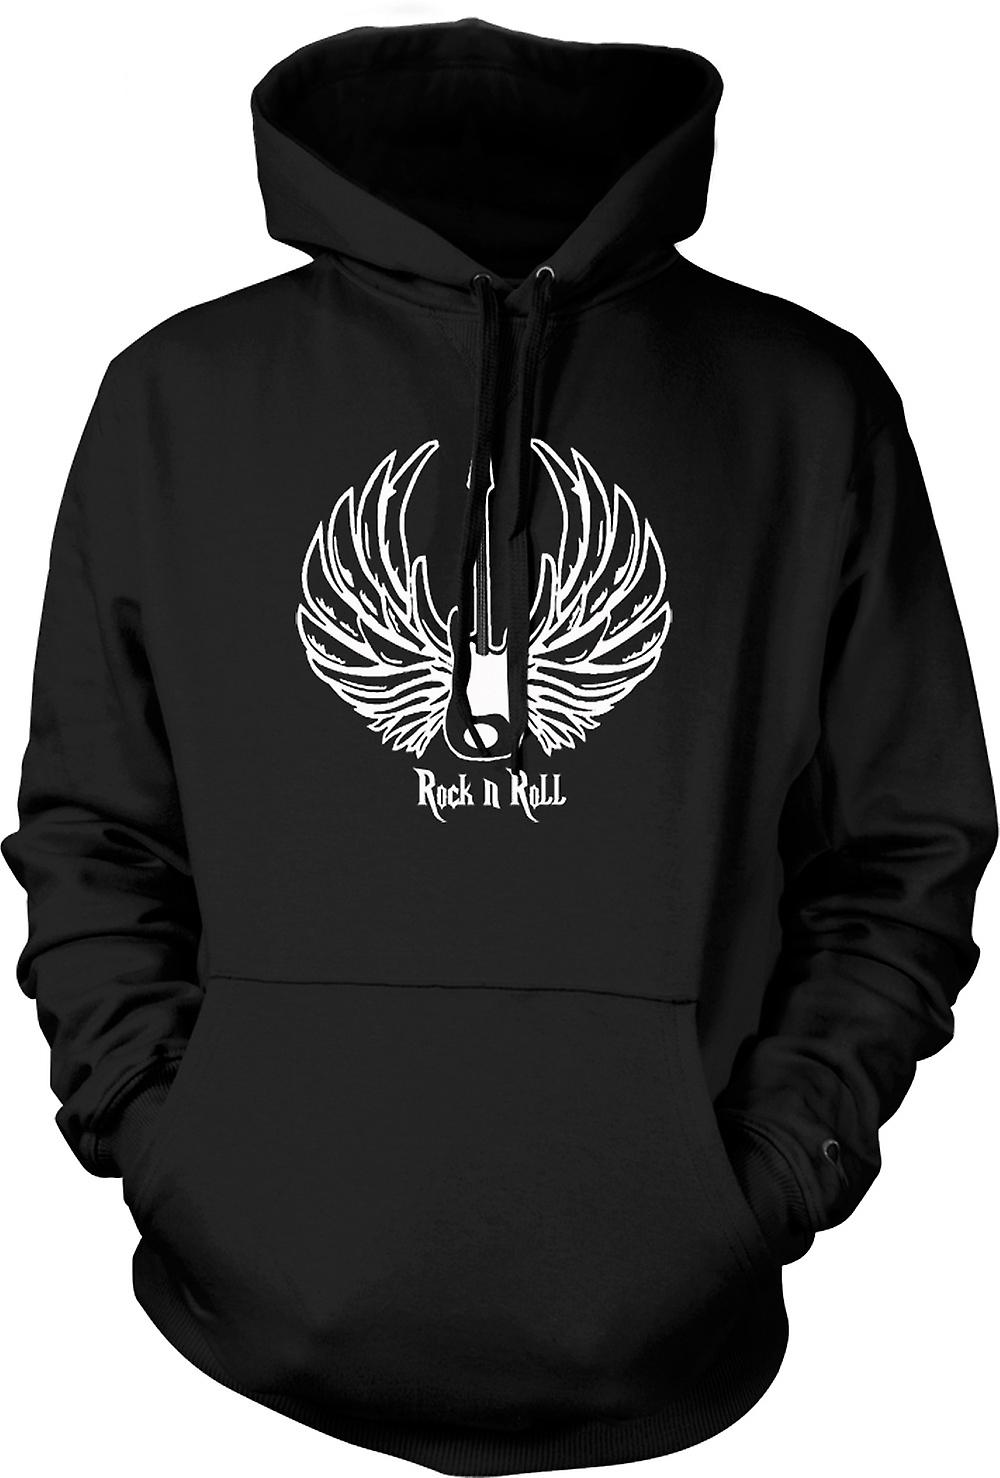 Mens Hoodie - Rock n Roll - Guitar Wings - Music